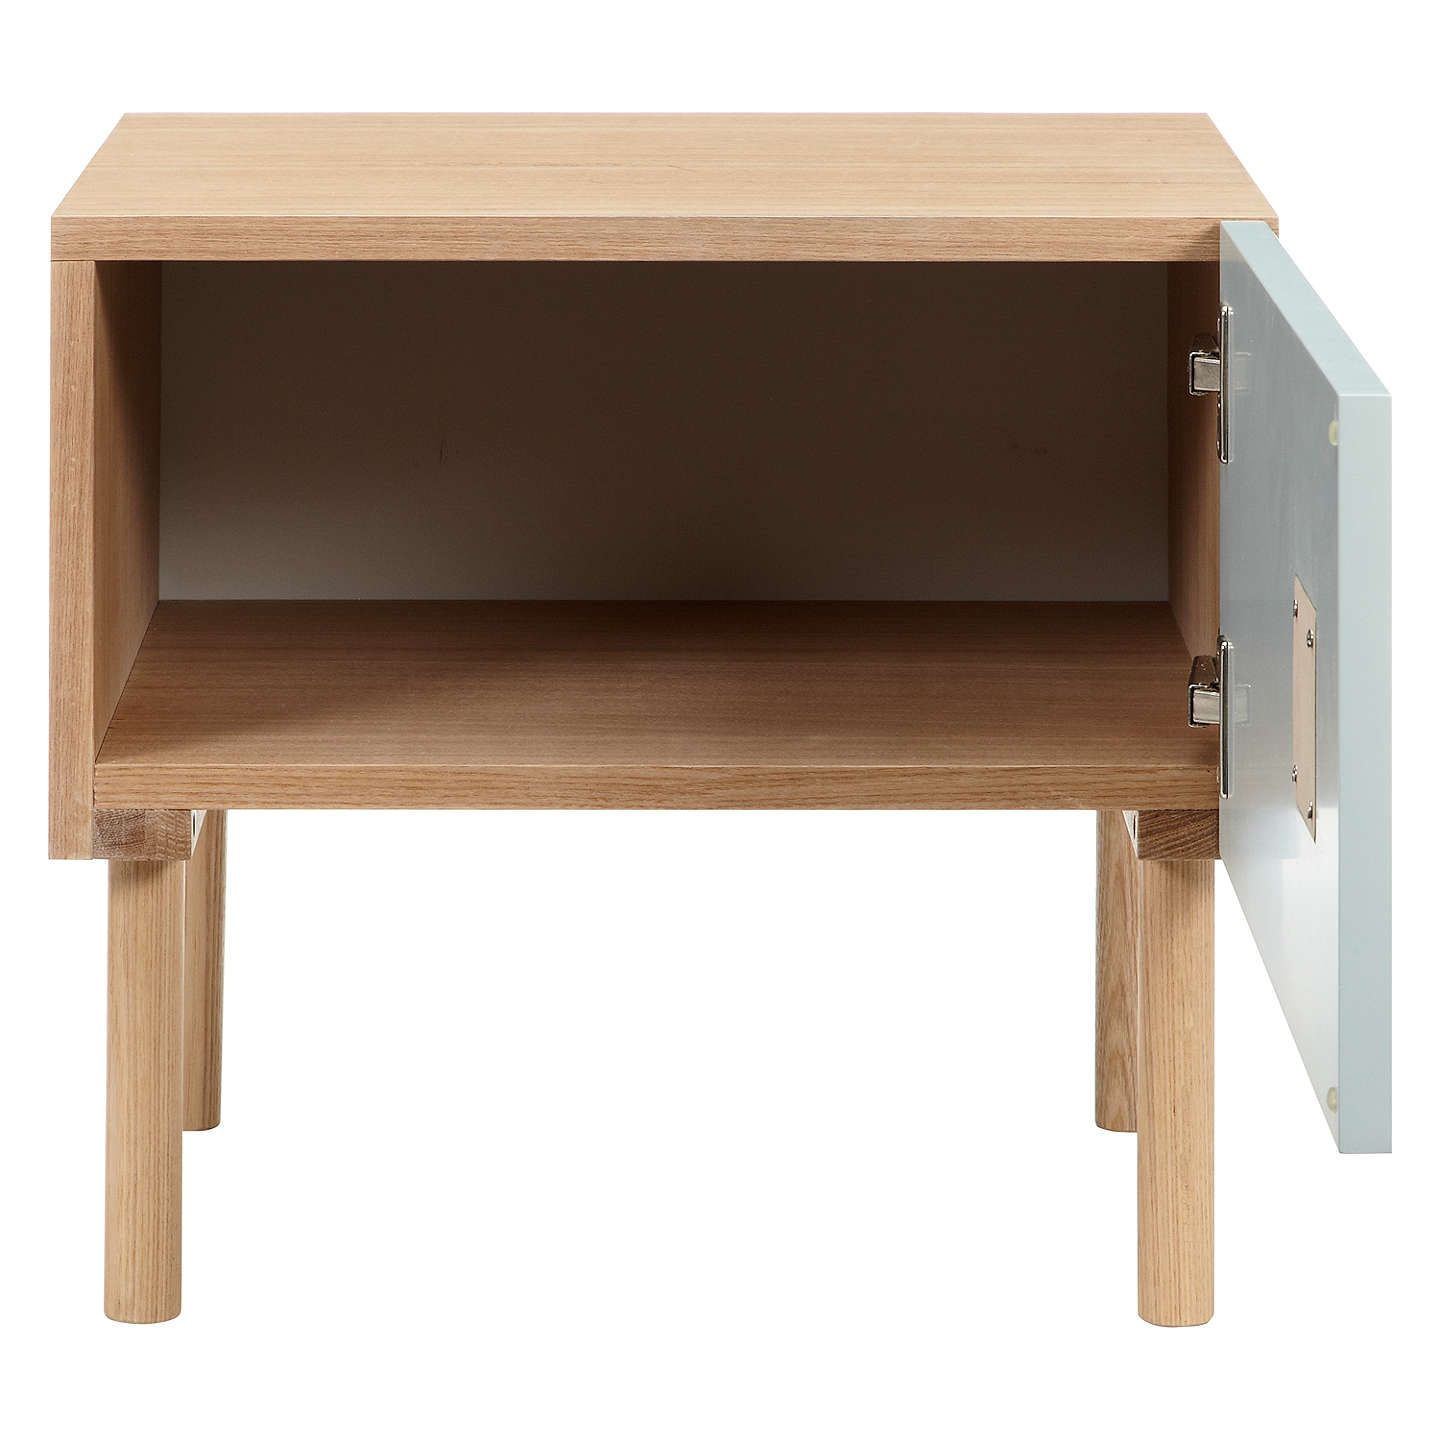 BuyJohn Lewis Spot 1 Door Bedside Table, Blue Online at johnlewis.com